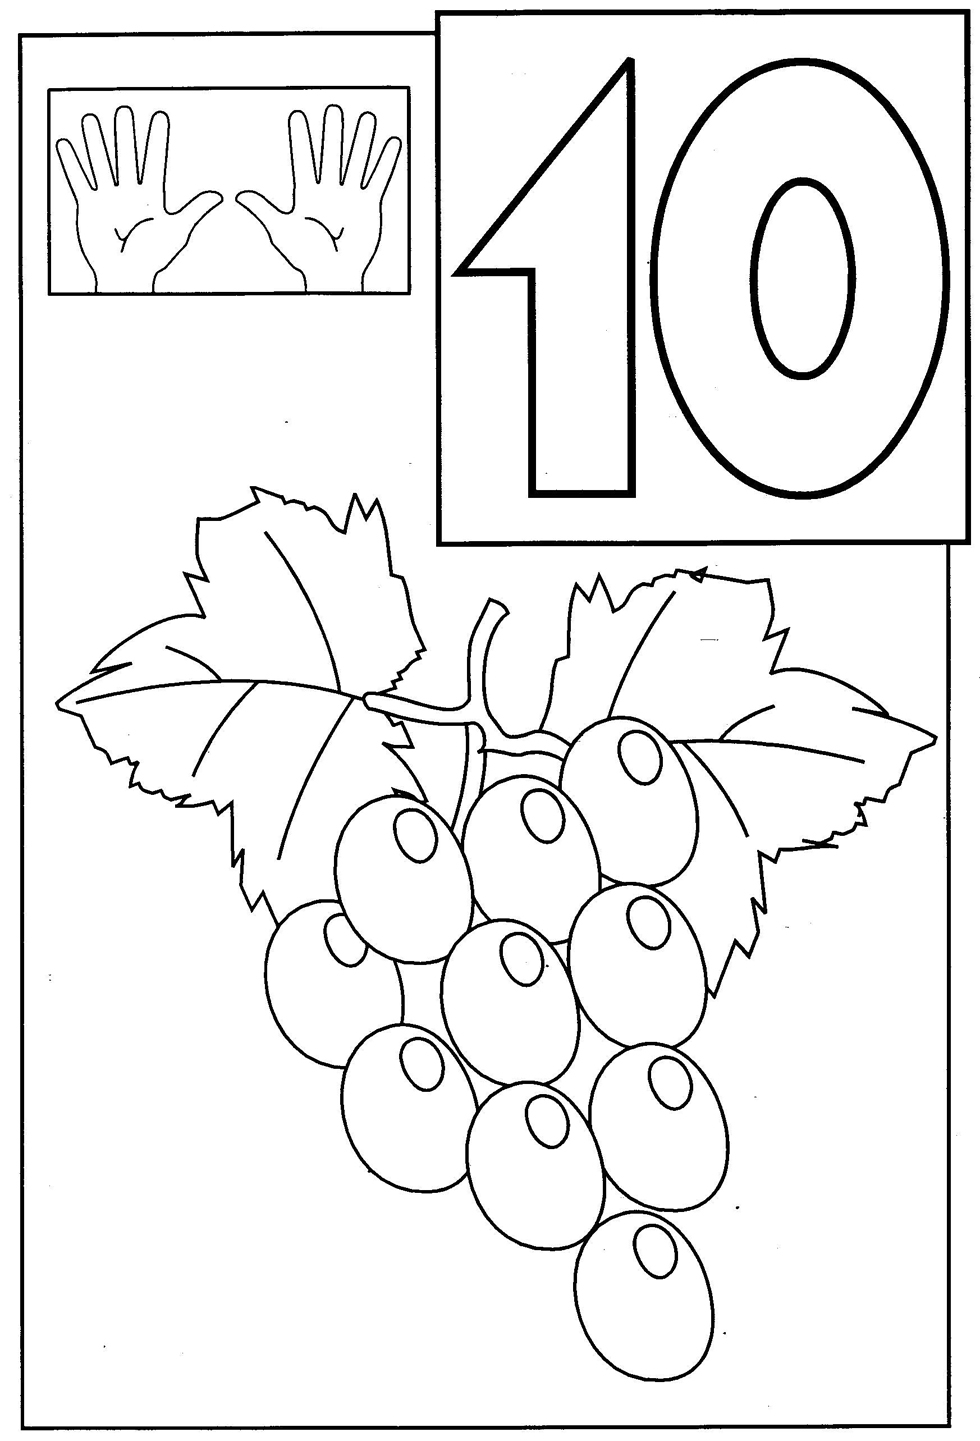 Numbers coloring sheets for toddlers - Graphs Coloring Pages